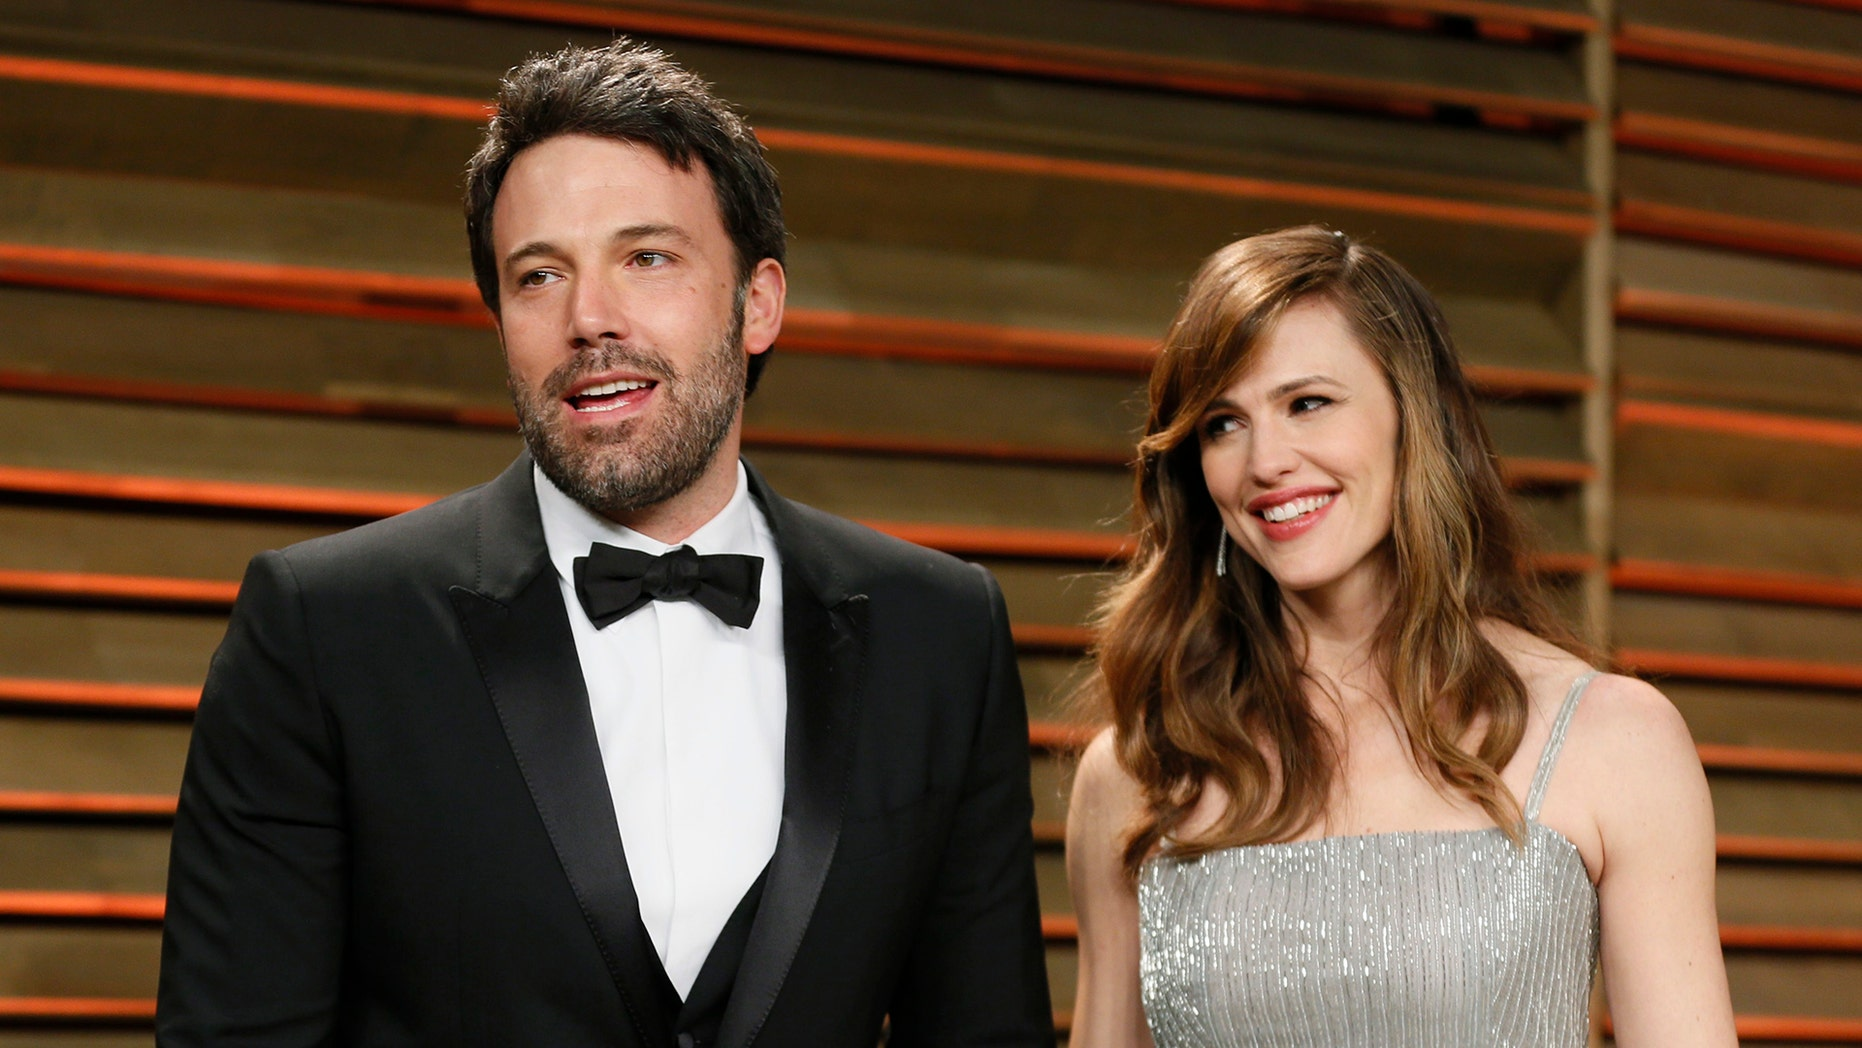 Ben Affleck and Jennifer Garner during happier times.